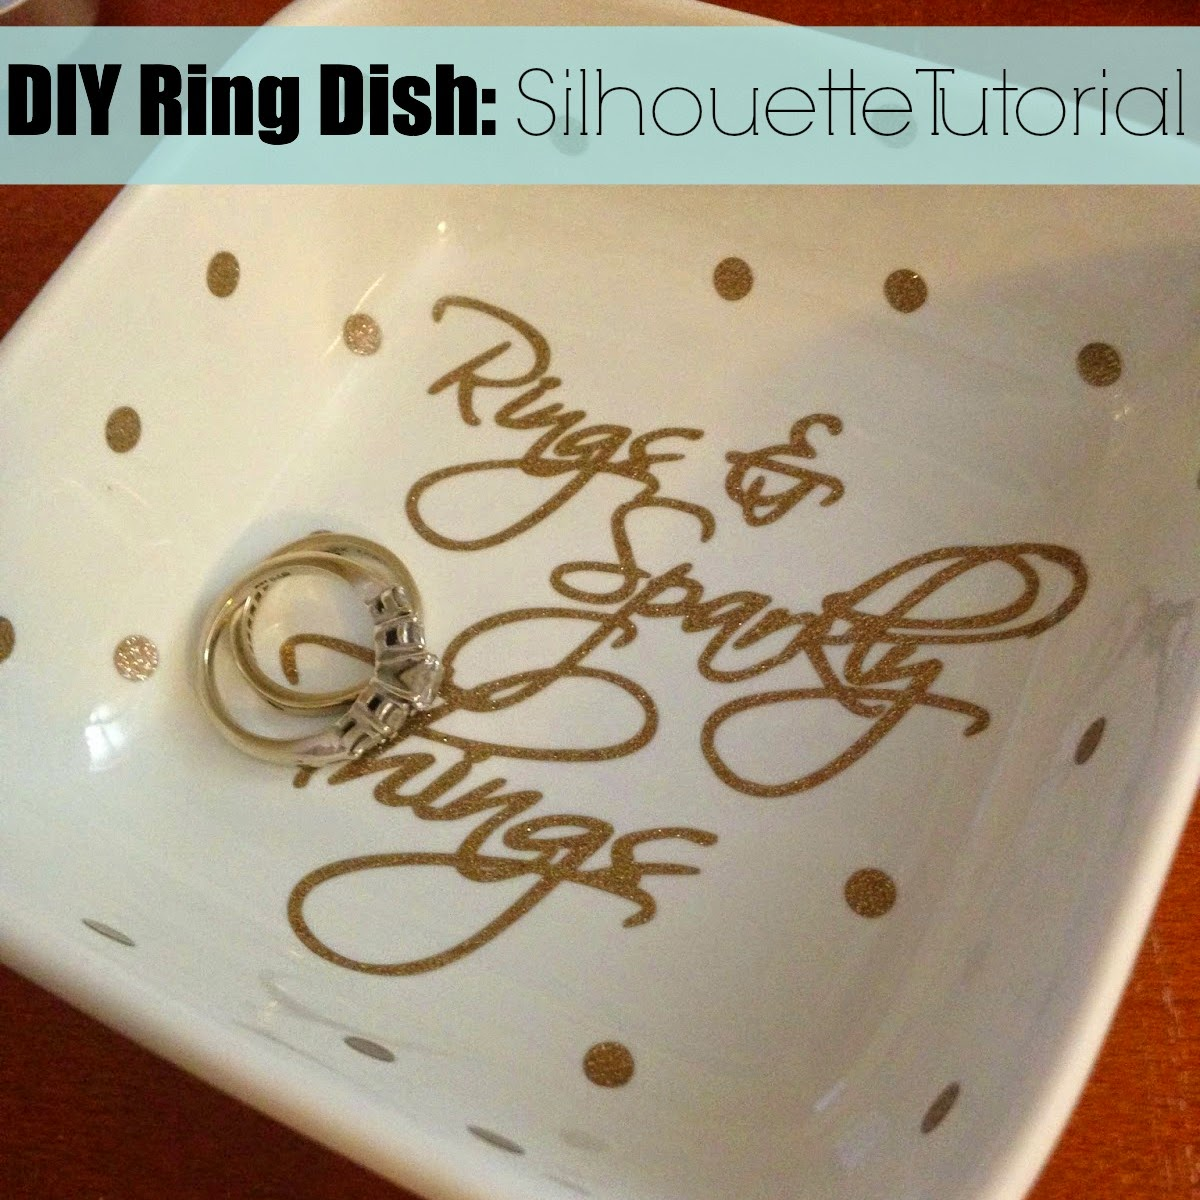 DIY, do it yourself, ring dish, Silhouette tutorial